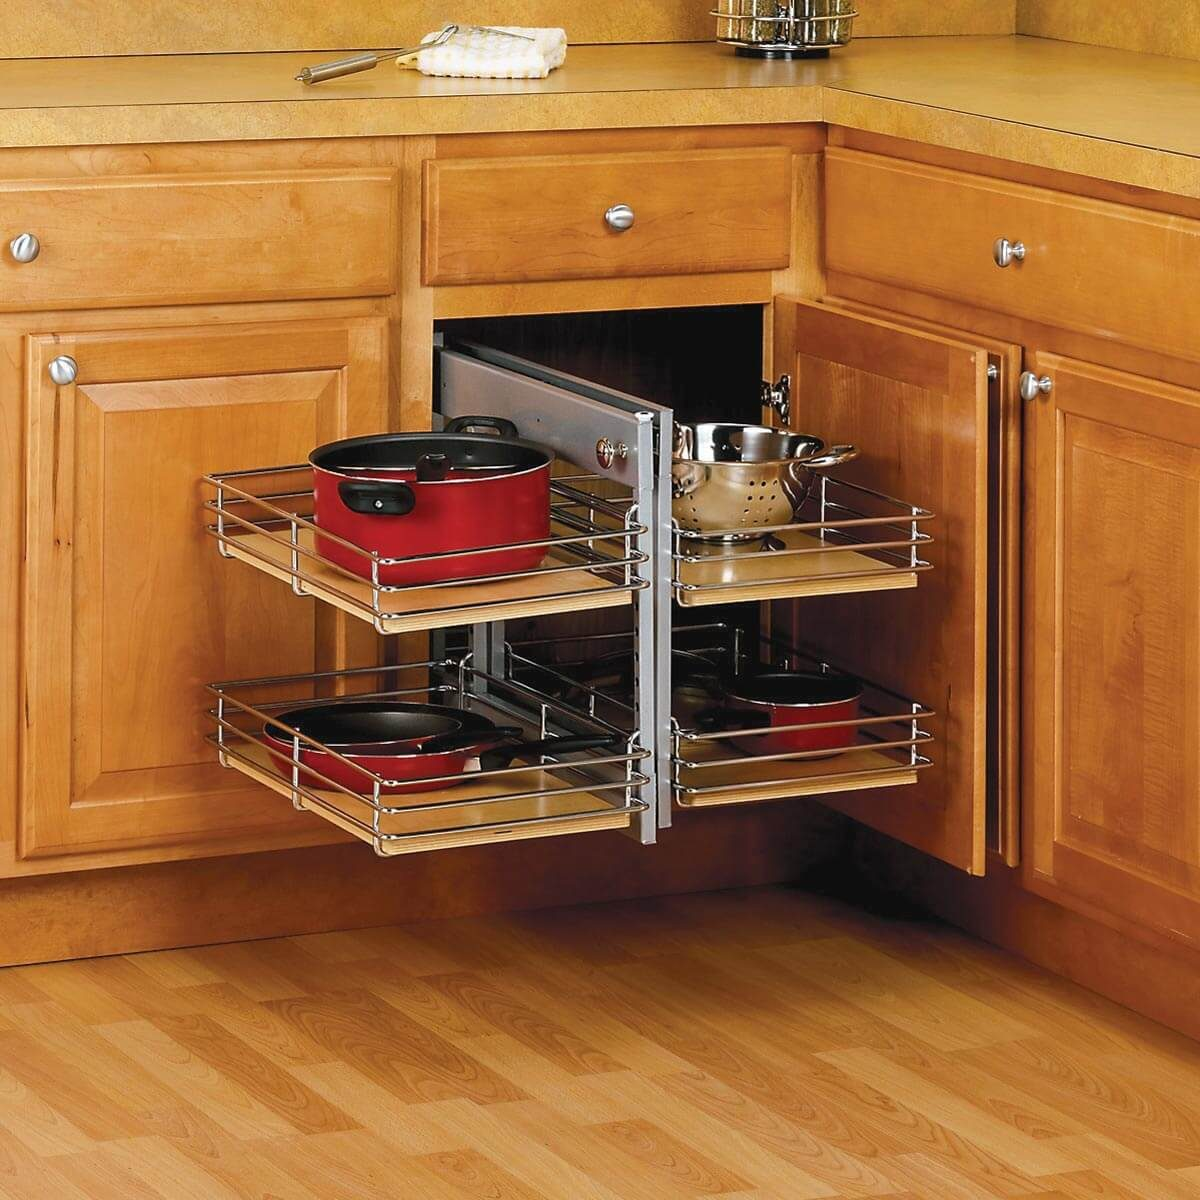 Make a Blind-Corner Cabinet More Accessible